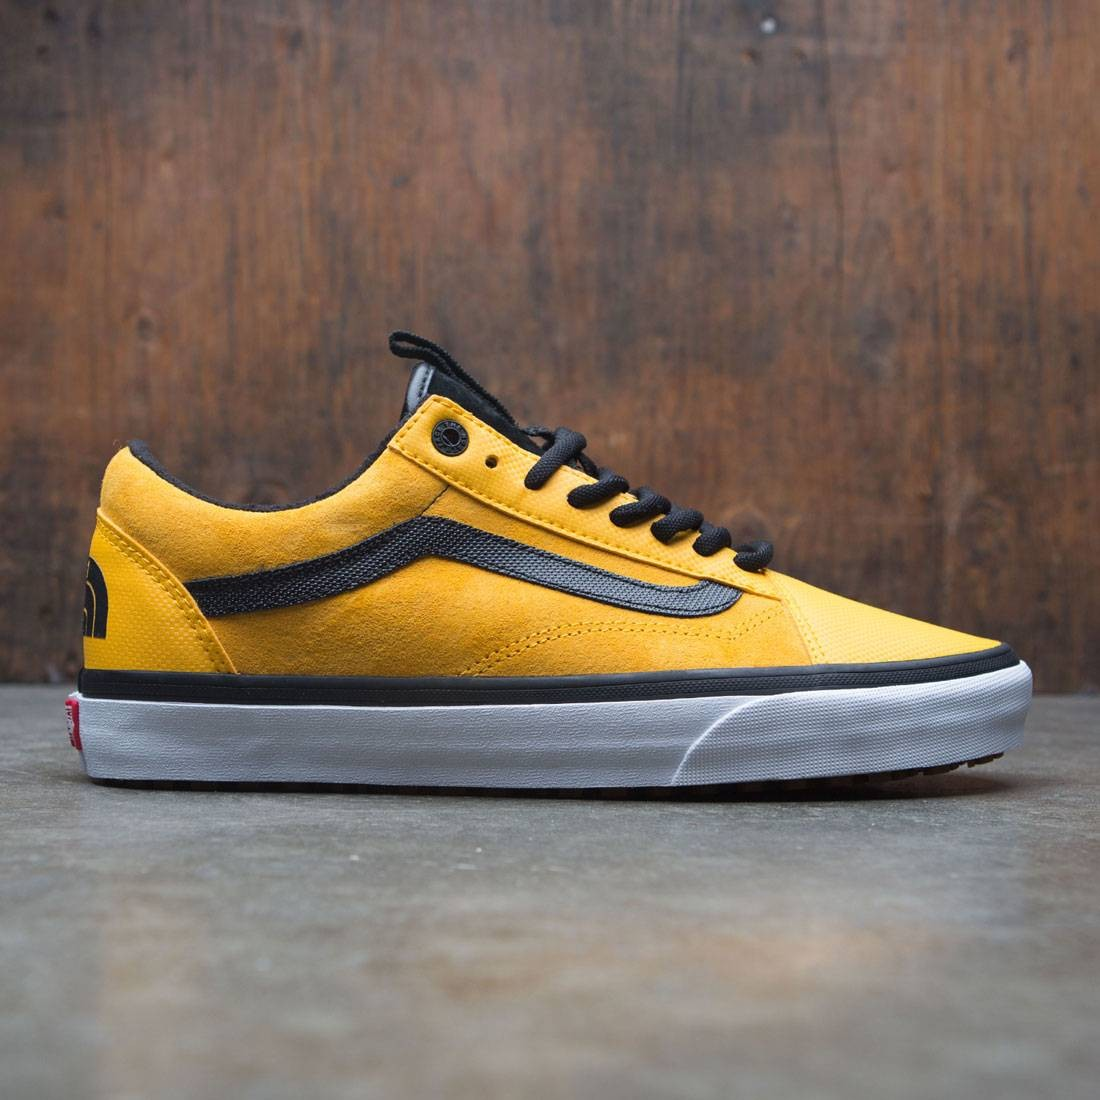 vans mte old skool